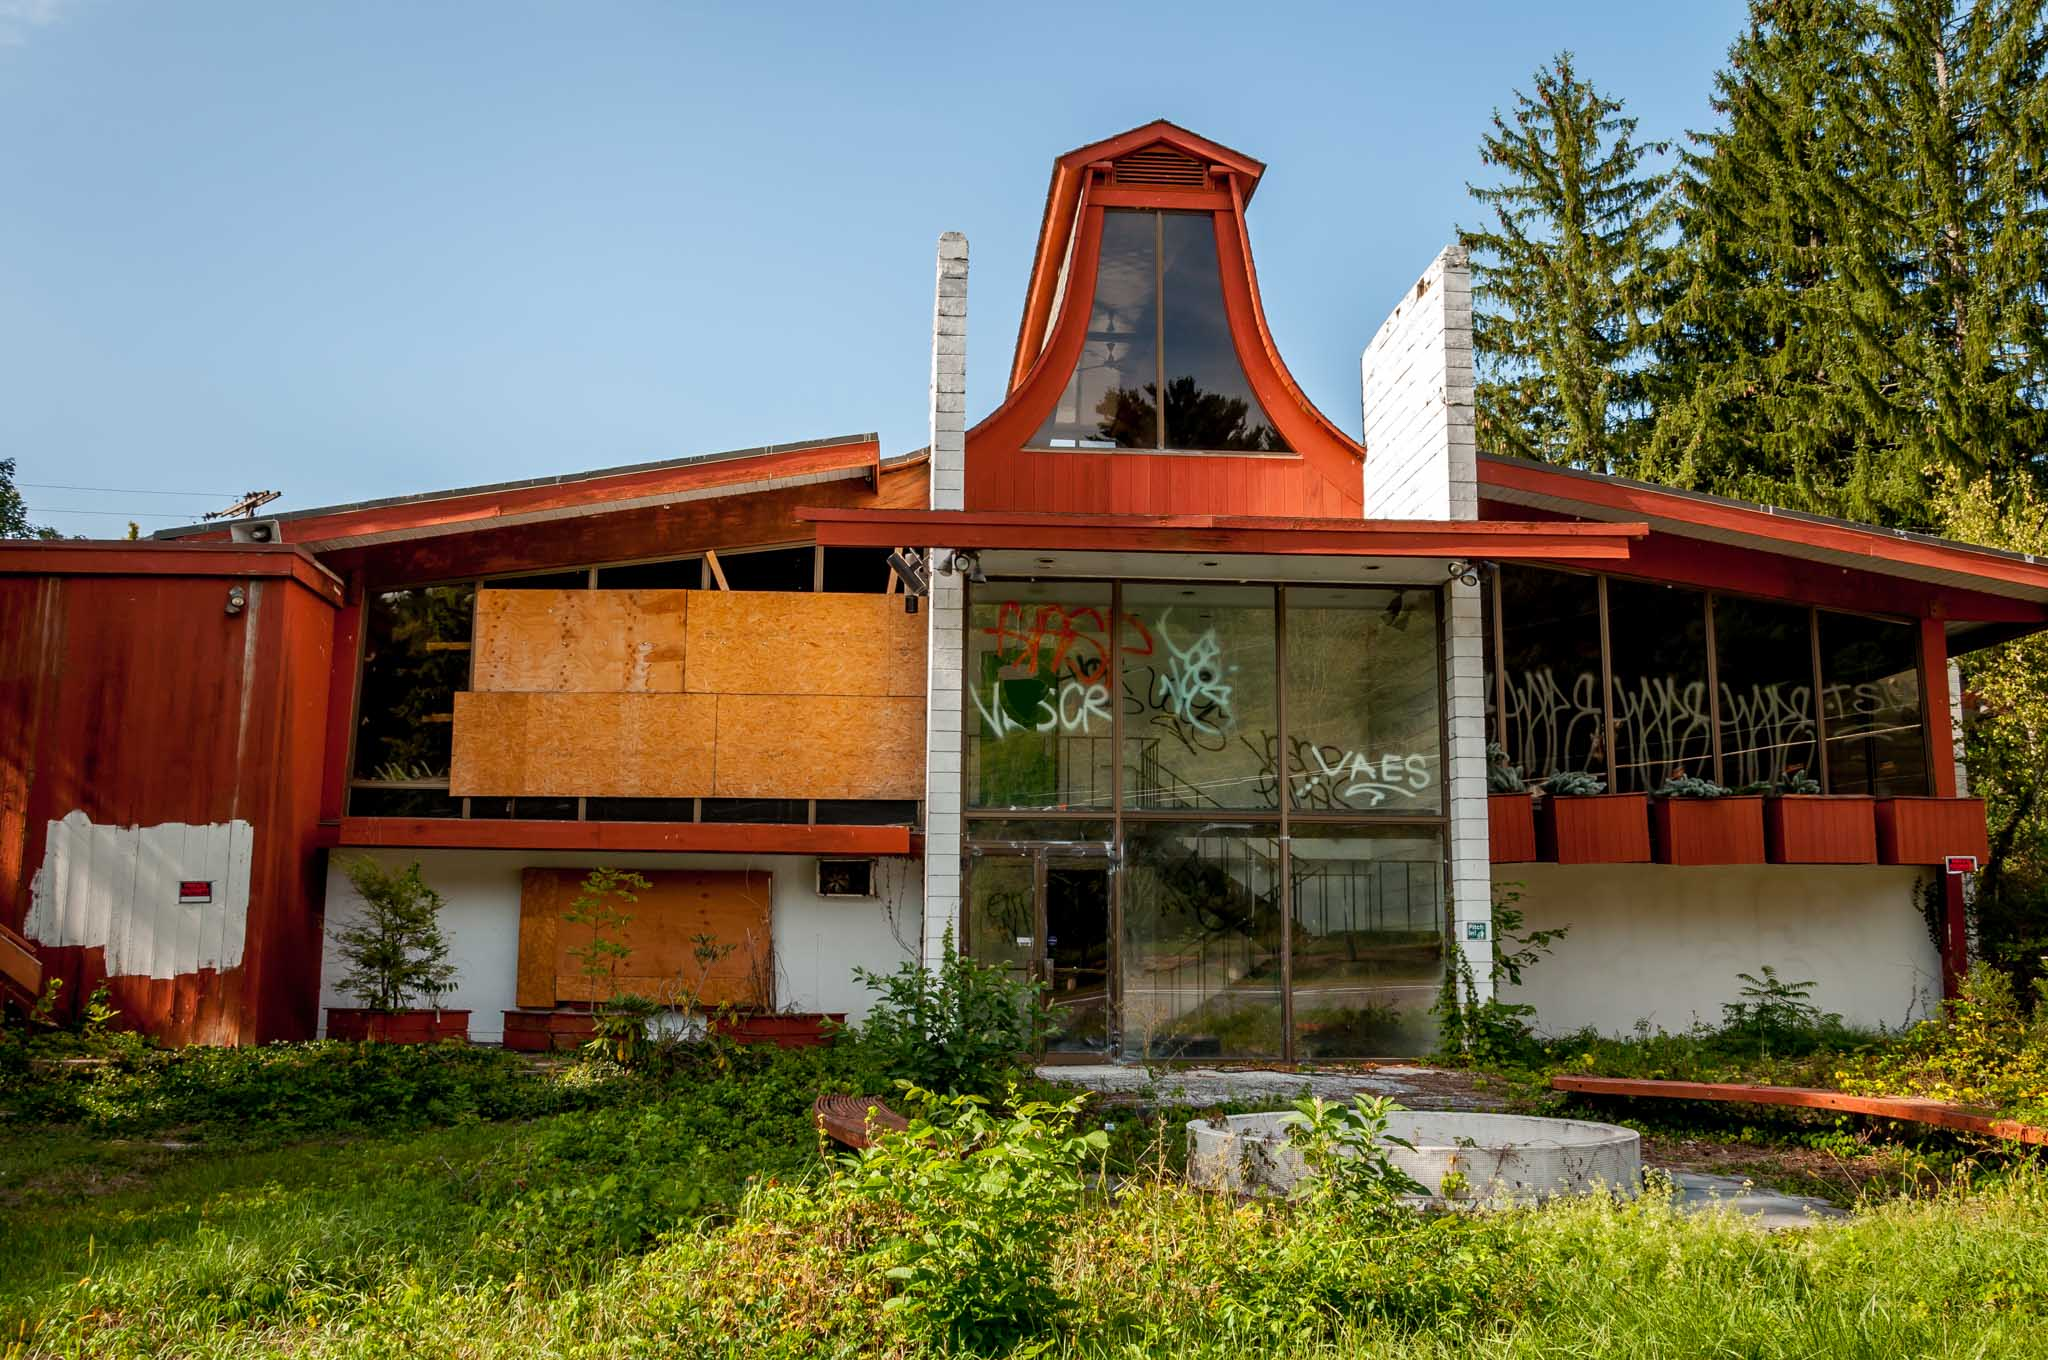 The Penn Hills Resort is one of the abandoned resorts of the Poconos